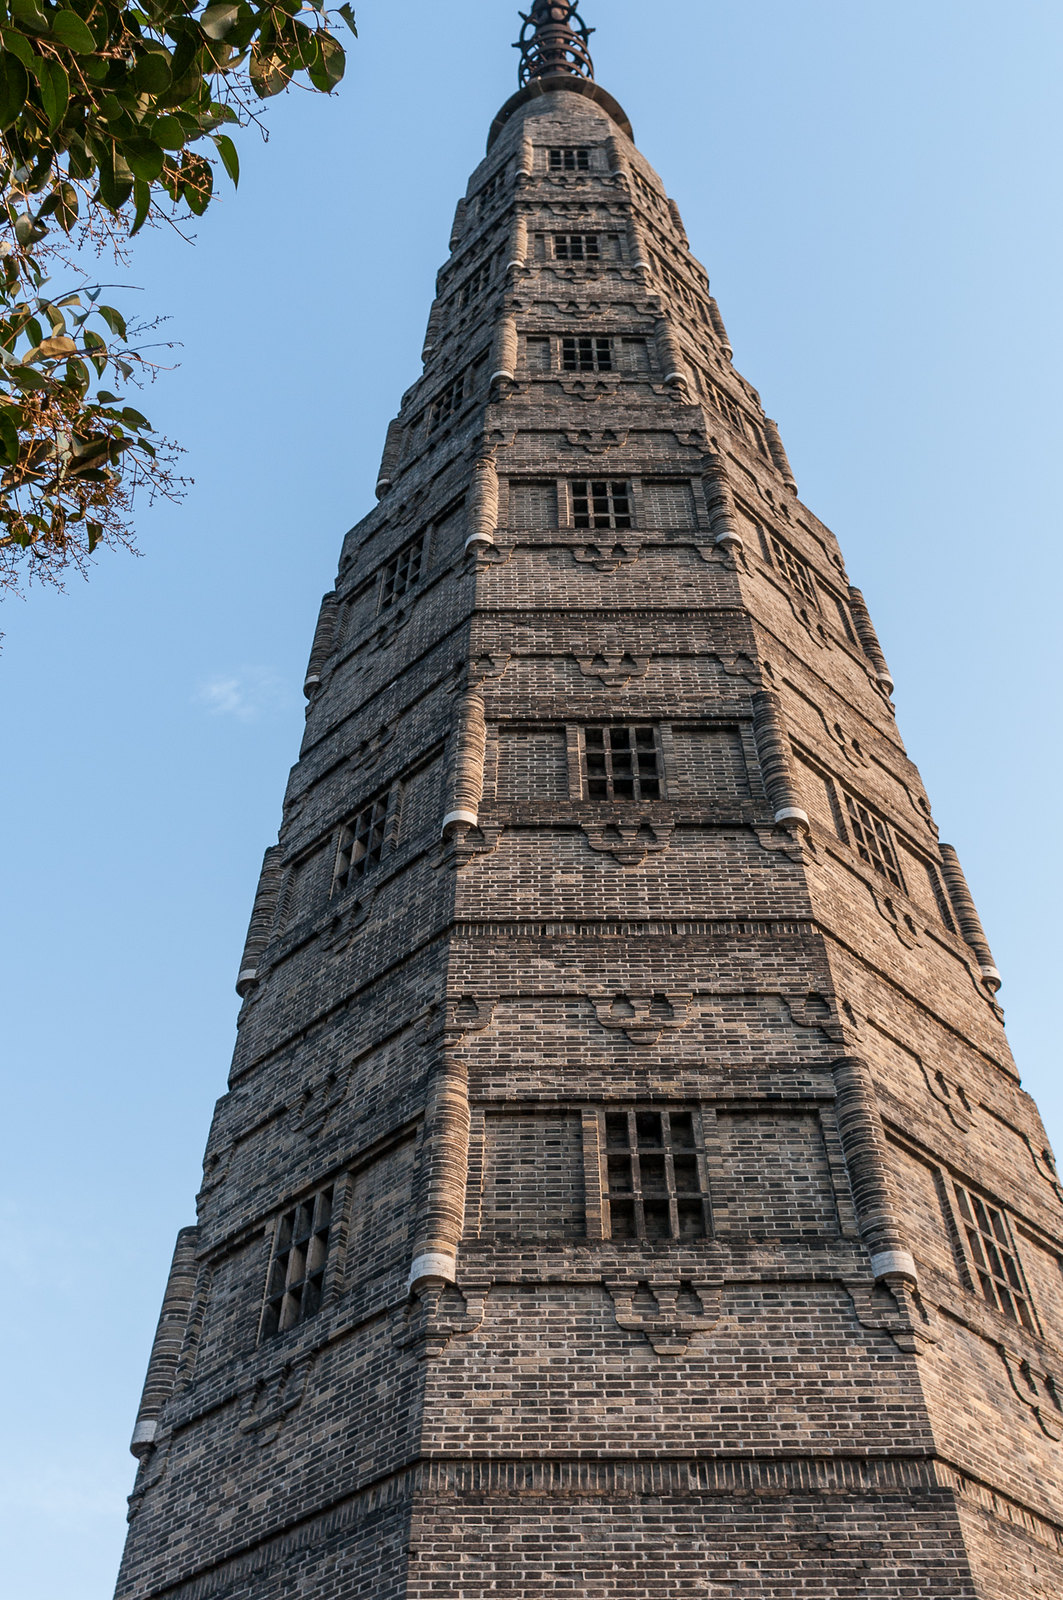 Baochu tower 保俶塔